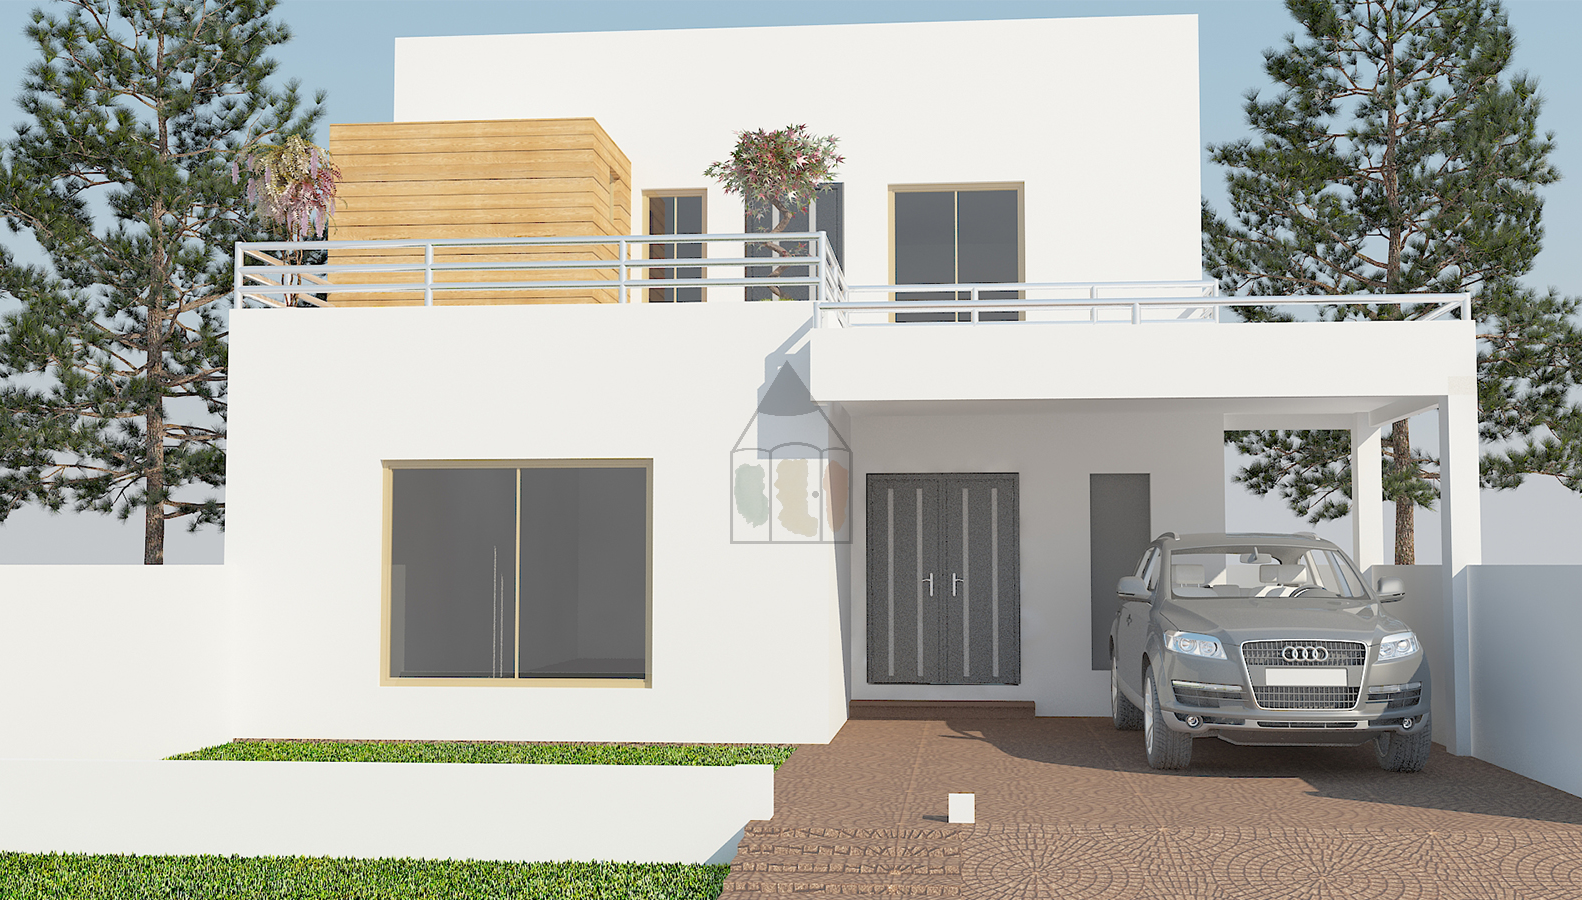 8 marla house plan design front elevation designed in multan pakistan the house map has 3 bedrooms with attached bathrooms one bedroom is on the ground